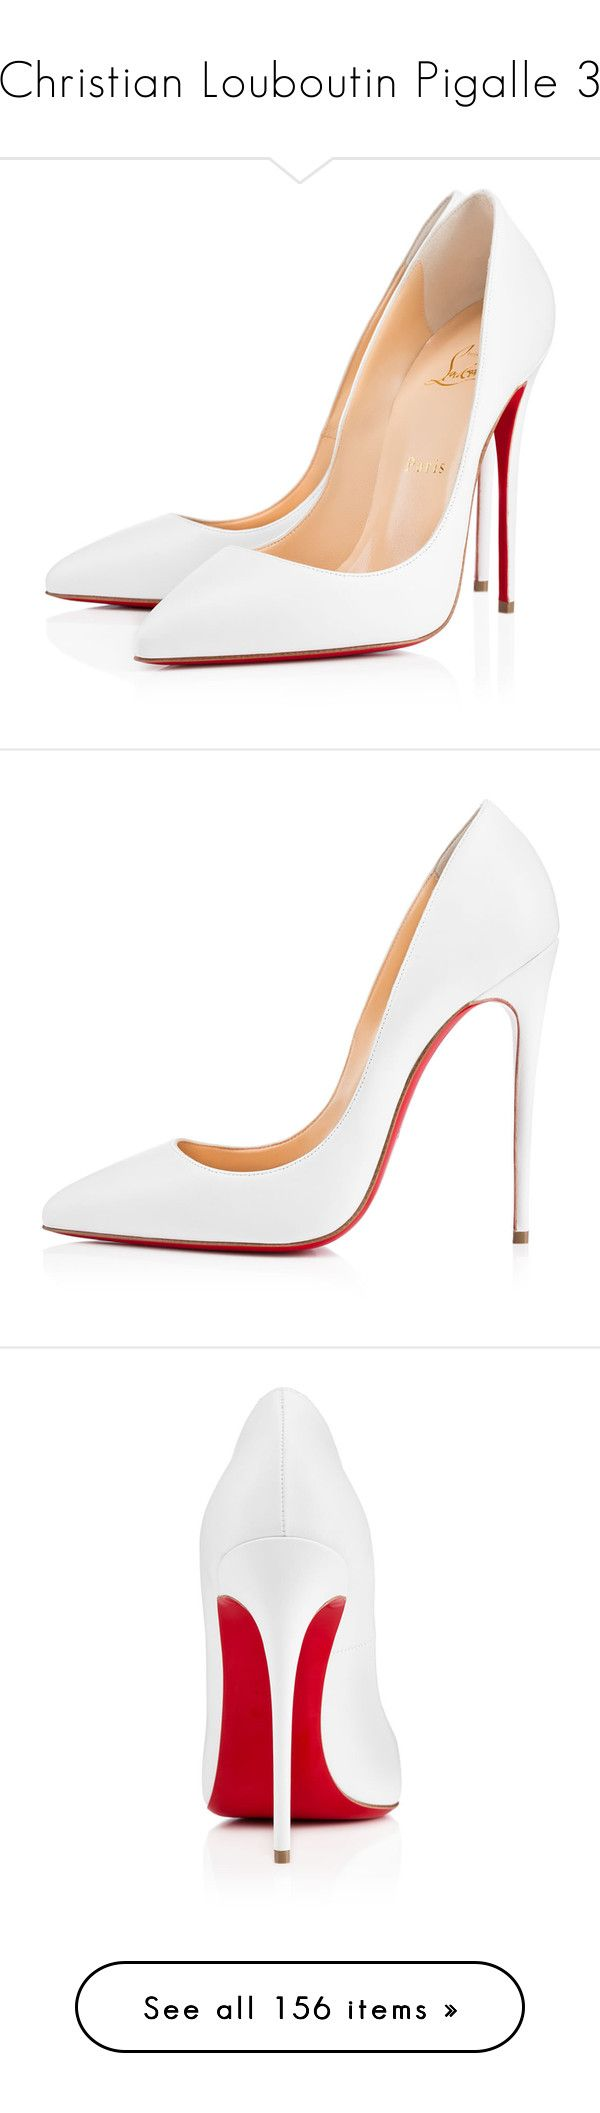 """Christian Louboutin Pigalle 3"" by enchantedxox ❤ liked on Polyvore featuring shoes, pumps, heels, louboutin, christian louboutin, white, high heel pumps, white heel pumps, christian louboutin pumps and leather pumps"